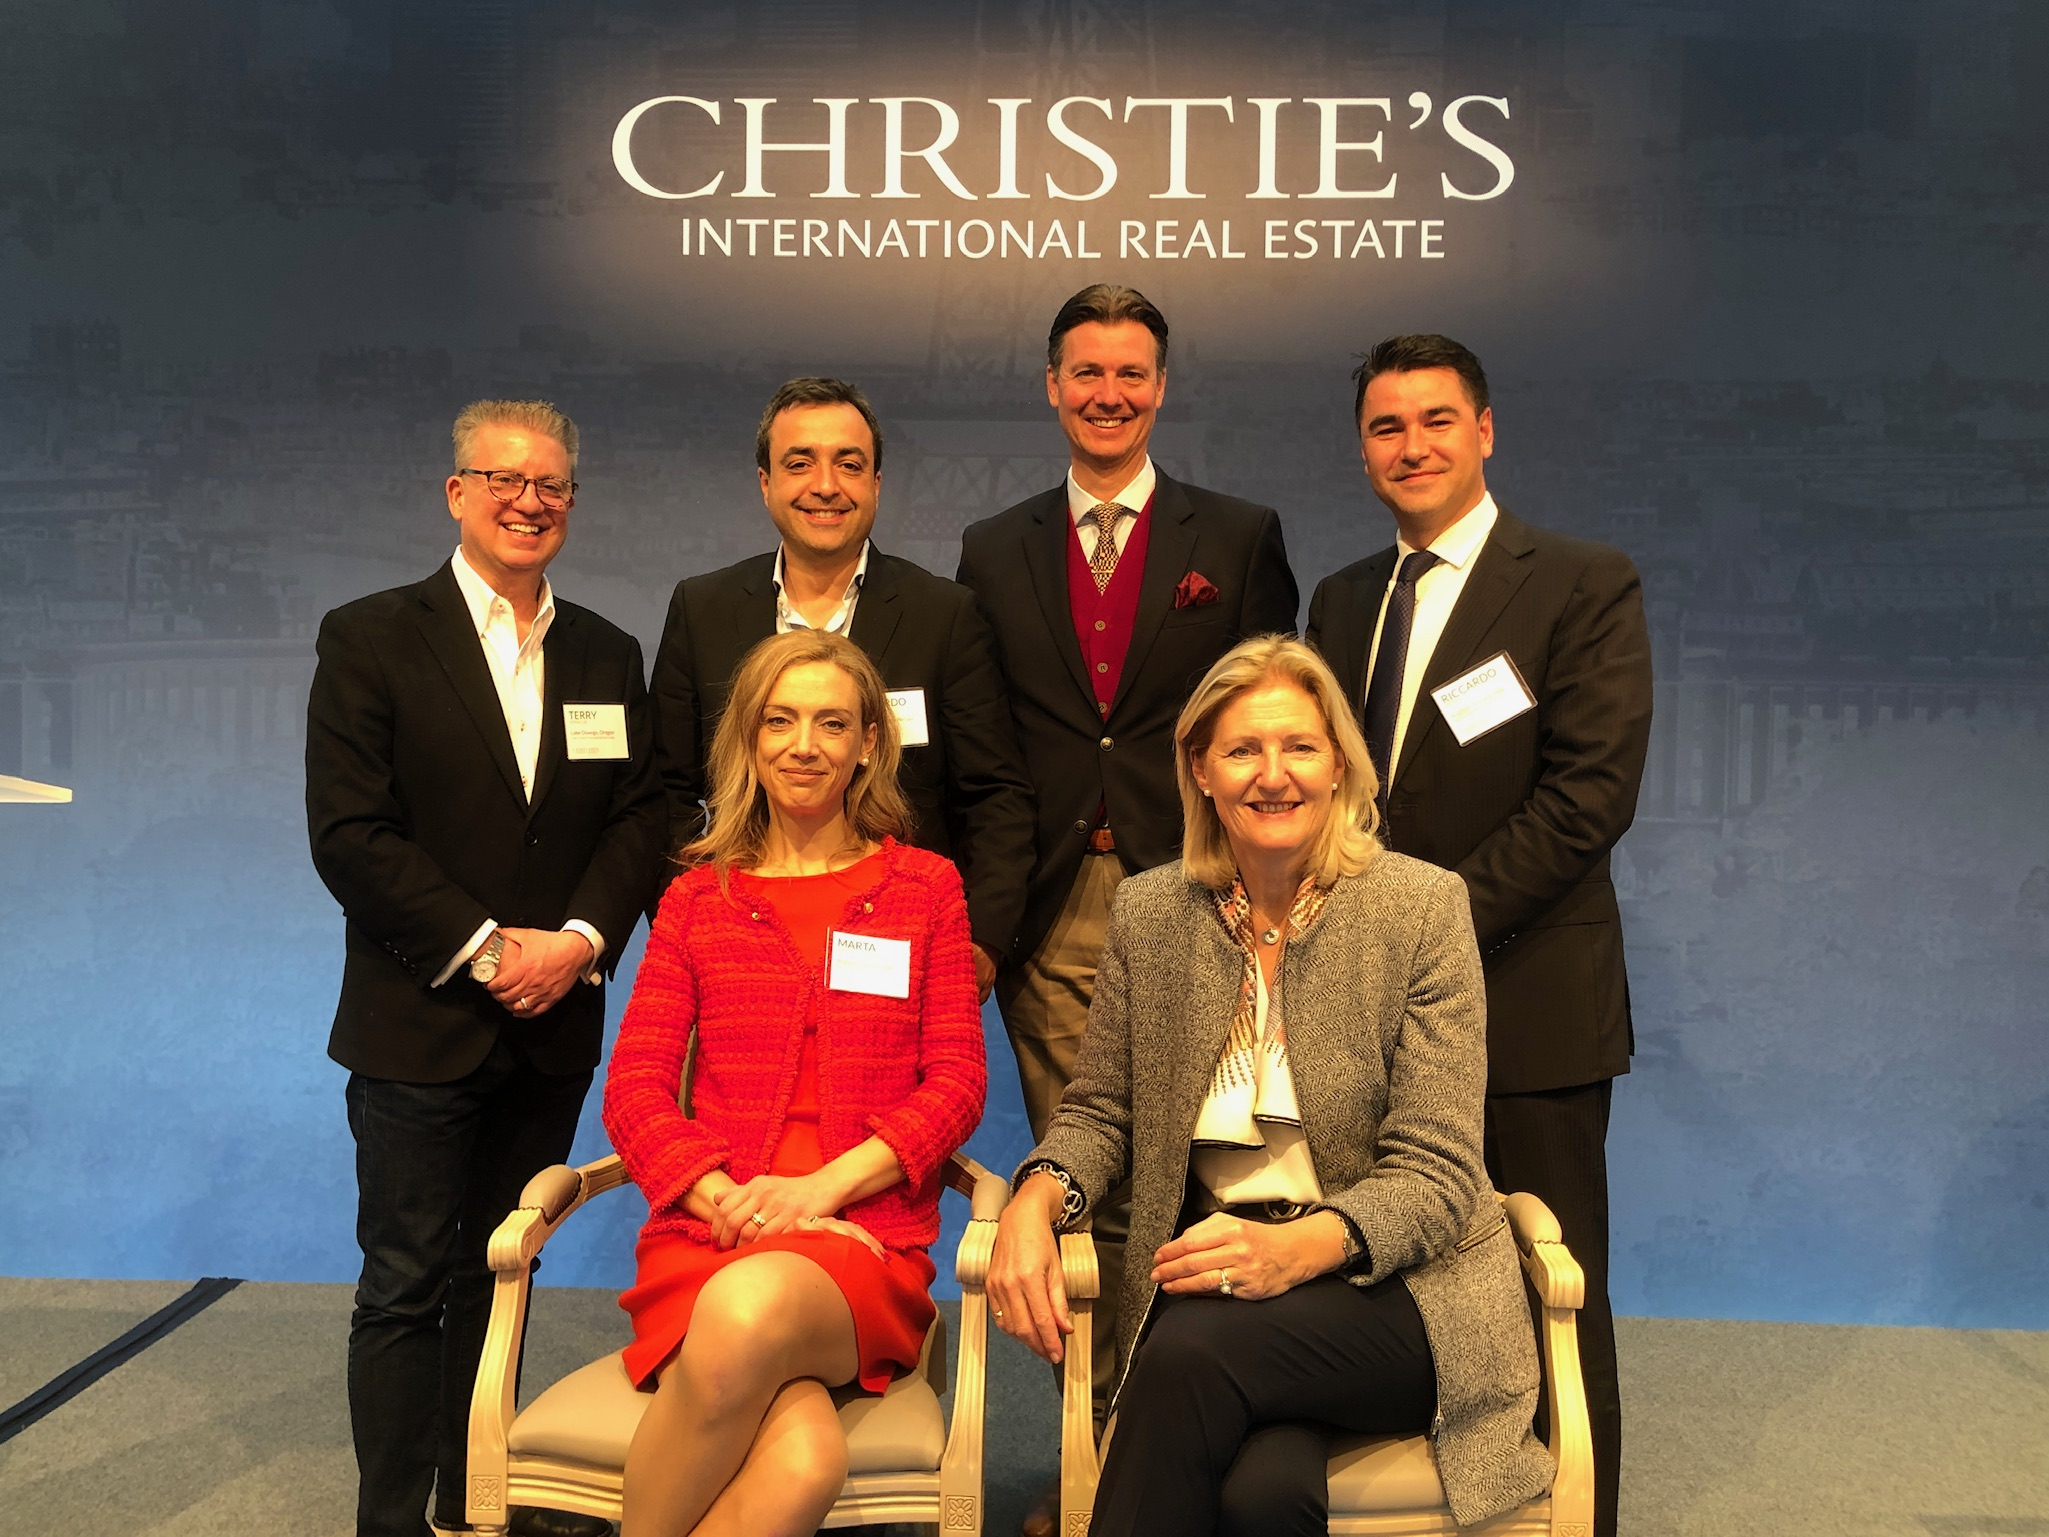 Portuguese luxury real estate, Christie's International Real Estate, investors, LUXIMOS Christie's International Real Estate, Algarve, Portugal, Porto, Northern Portugal